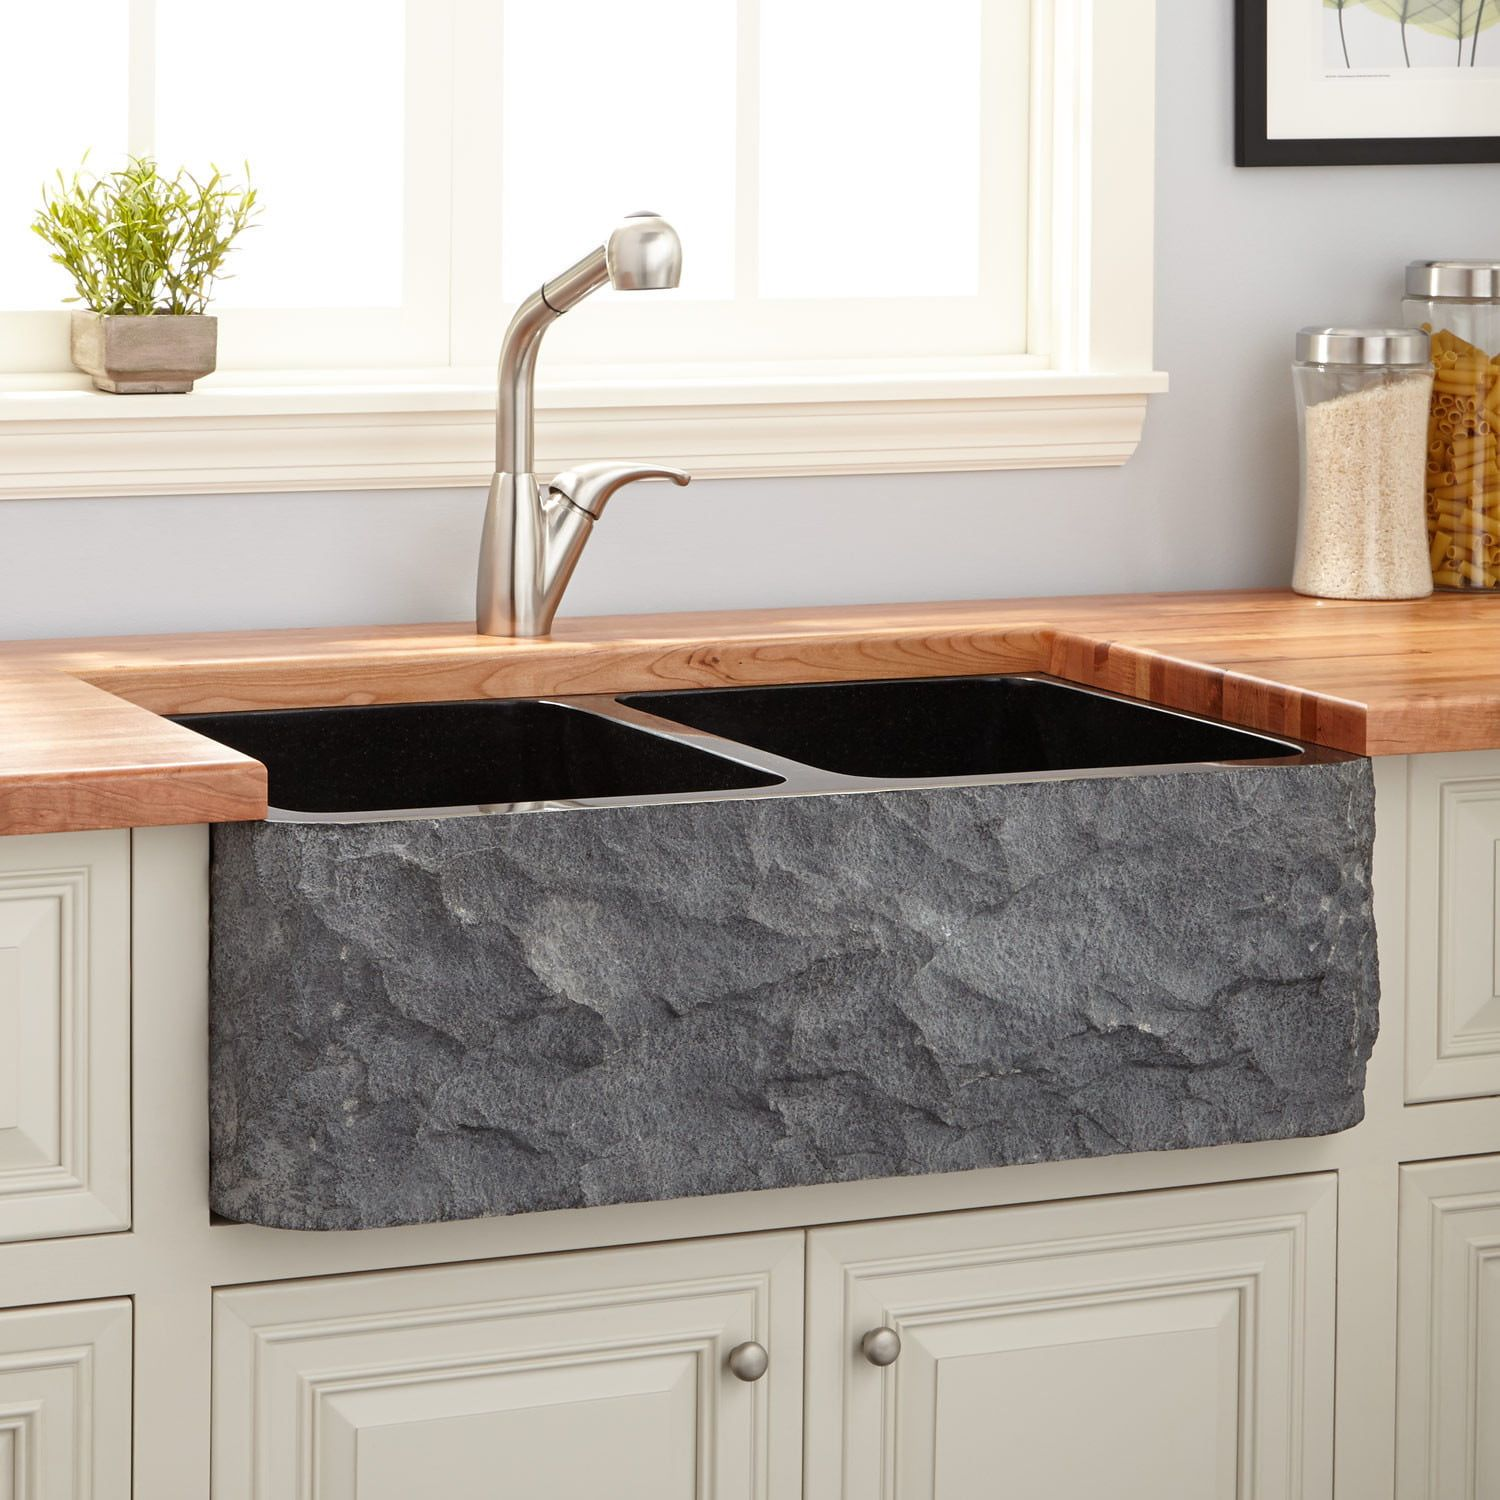 36 Polished Granite Double Bowl Farmhouse Sink In Chiseled Apron In Black Signature Hardware Farmhouse Sink Kitchen Sink Kitchen Fixtures